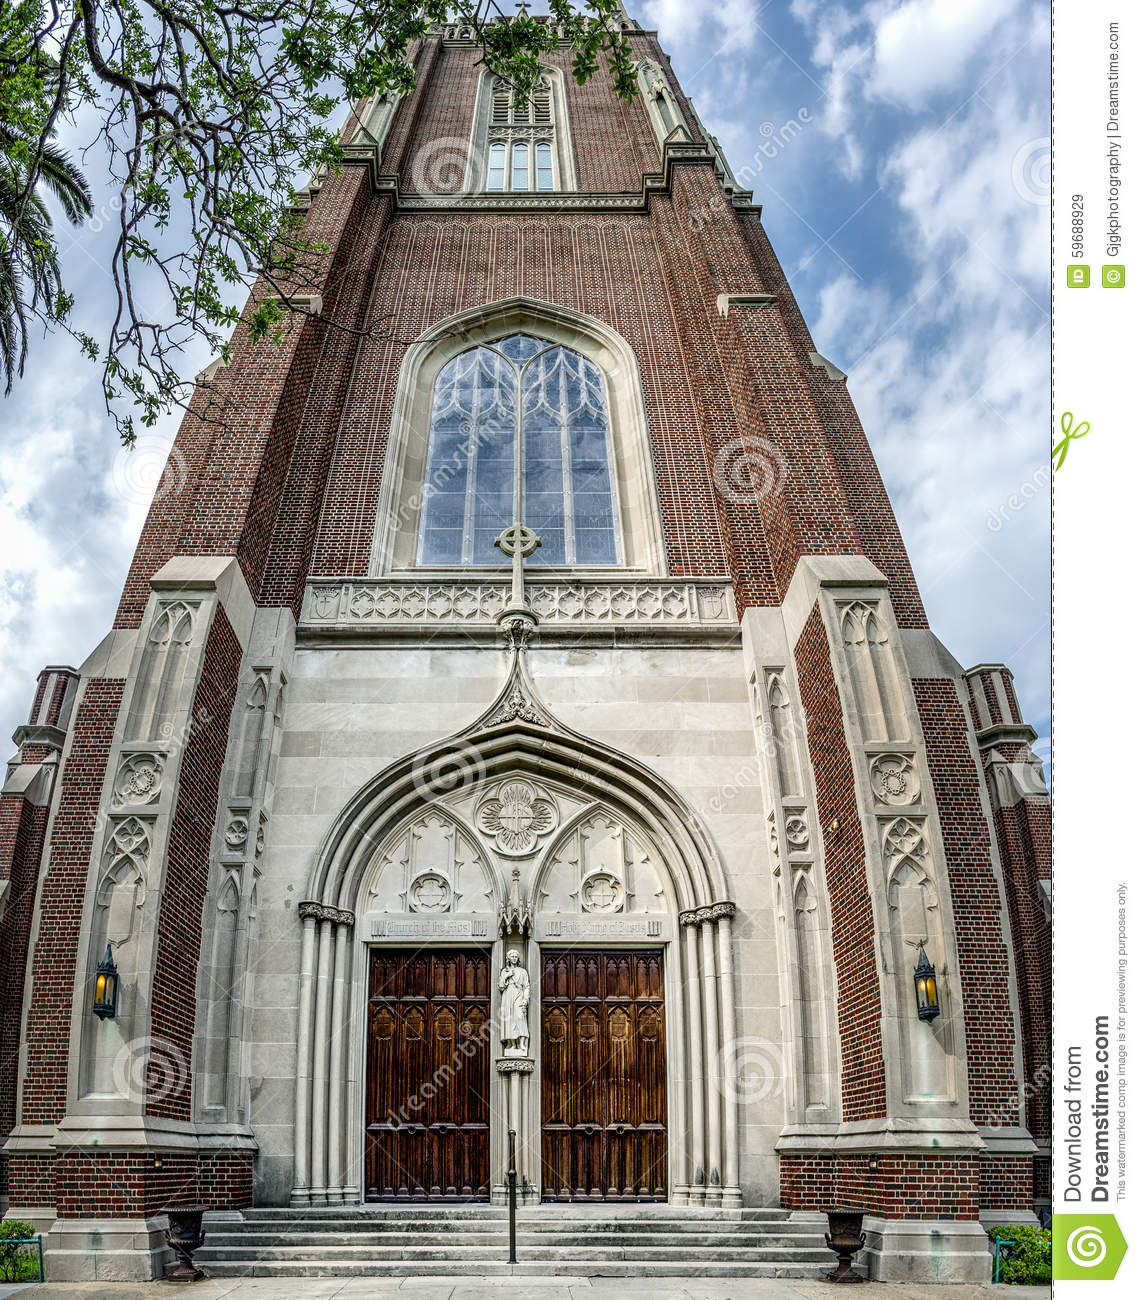 new orleans catholic singles Louisiana singles is the premier matchmaking service for upscale and mature singles, with offices in metairie,  serving new orleans,  at louisiana singles, .